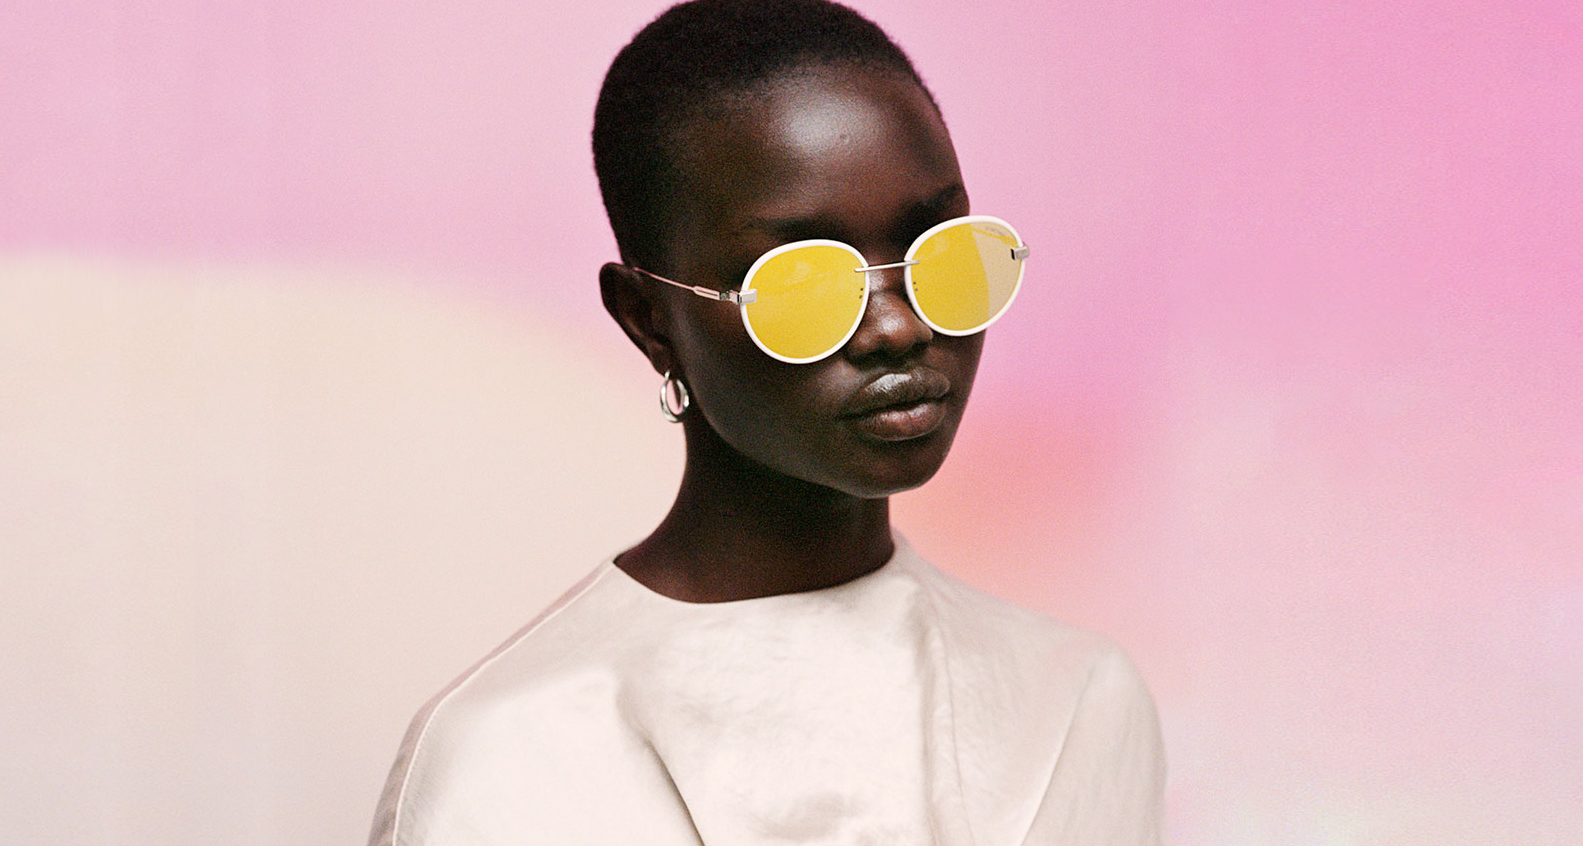 Rimowa is launching its first unisex sunglasses collection